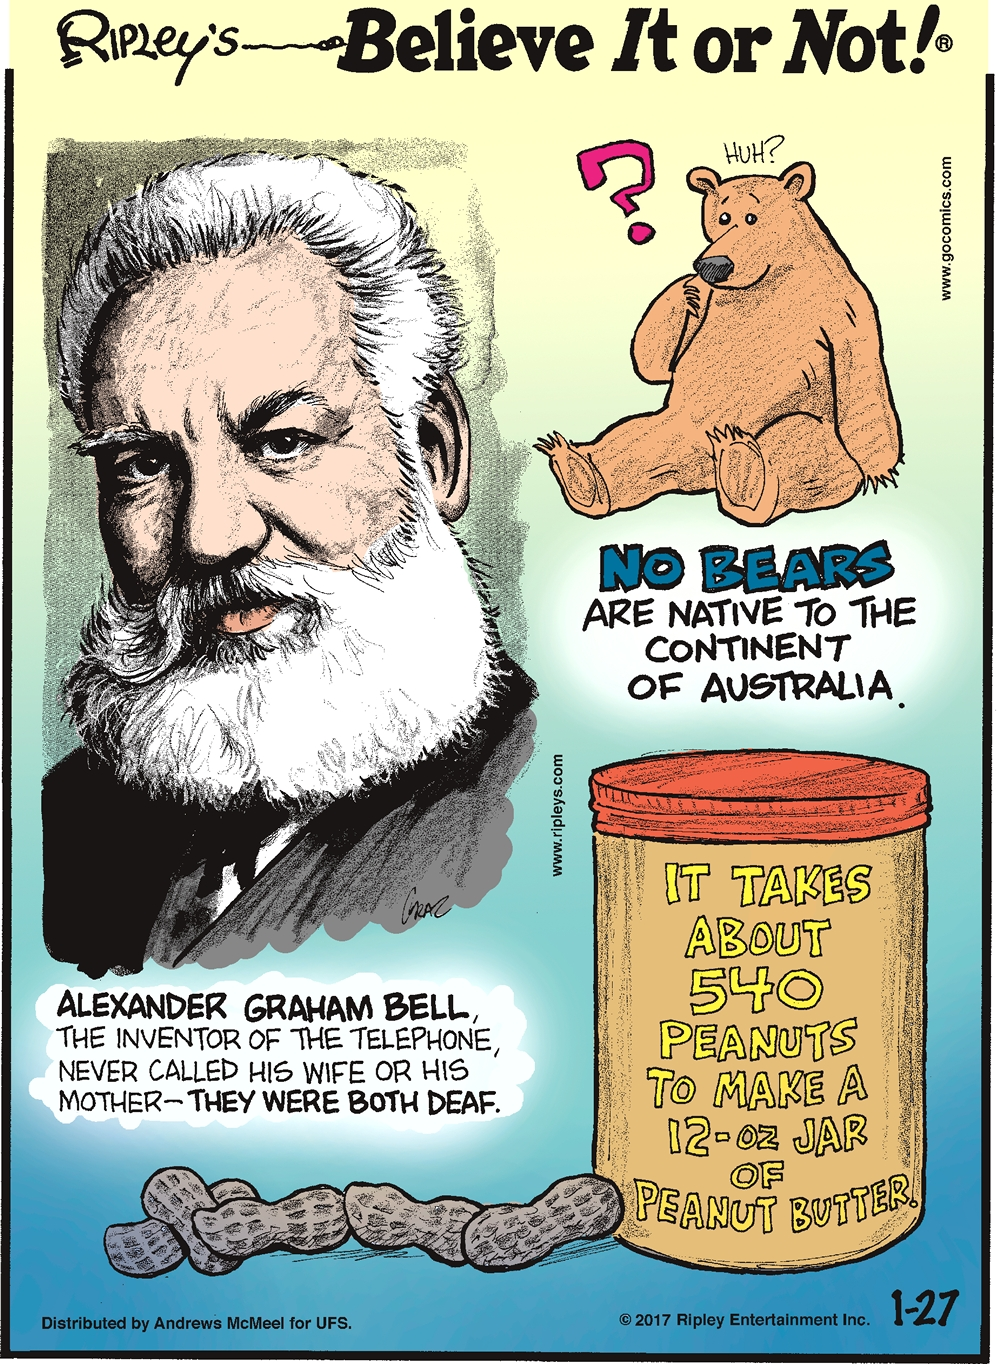 No bears are native to the continent of Australia.---------------------- Alexander Graham Bell, the inventor of the telephone, never called his wife or his mother - They were both deaf.-------------------- It takes about 540 peanuts to make a 12-oz jar of peanut butter.